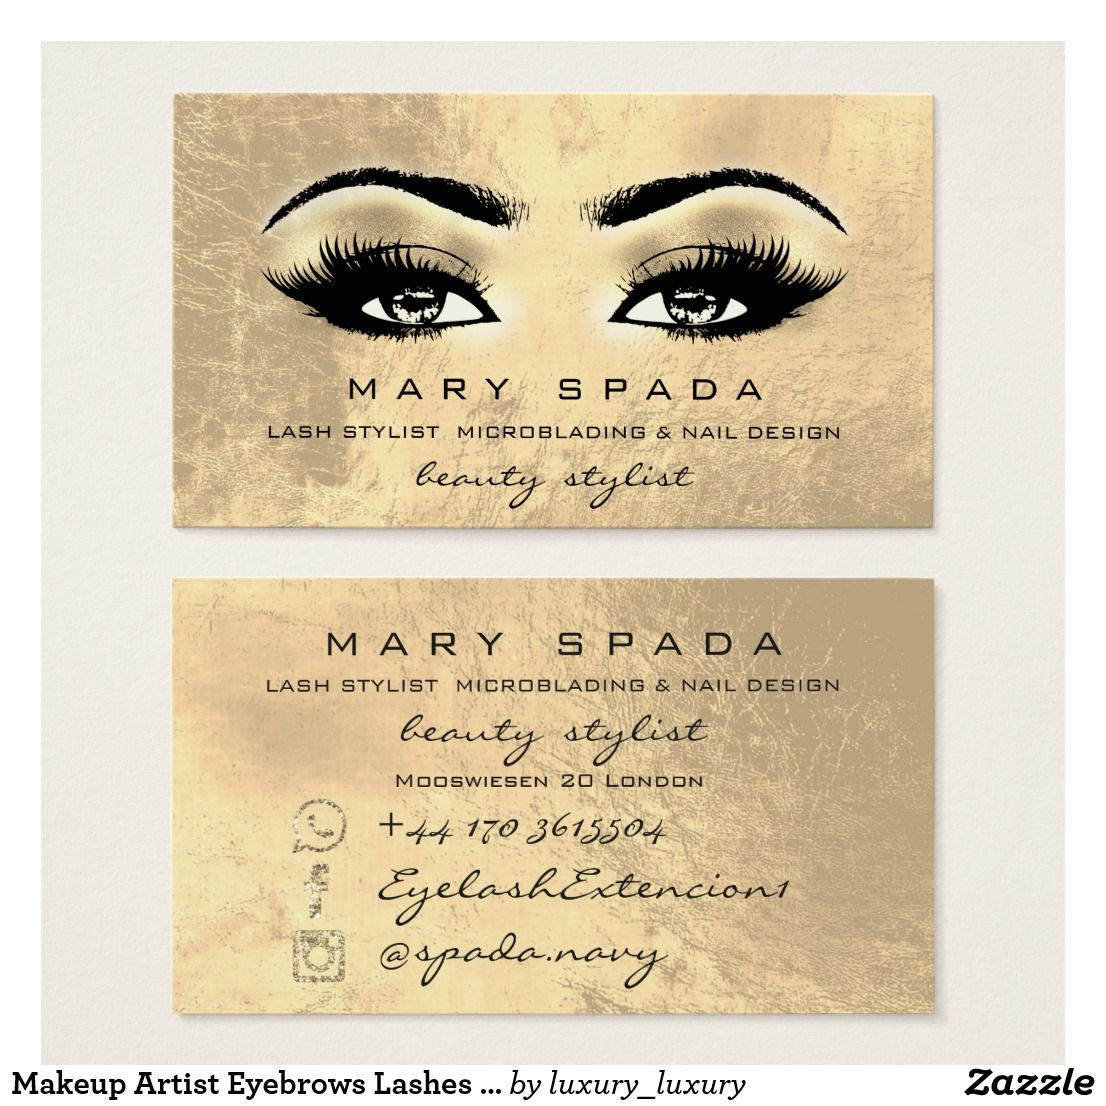 Makeup artist eyebrows lashes gold esthetician business card makeup artist eyebrows lashes gold esthetician business card colourmoves